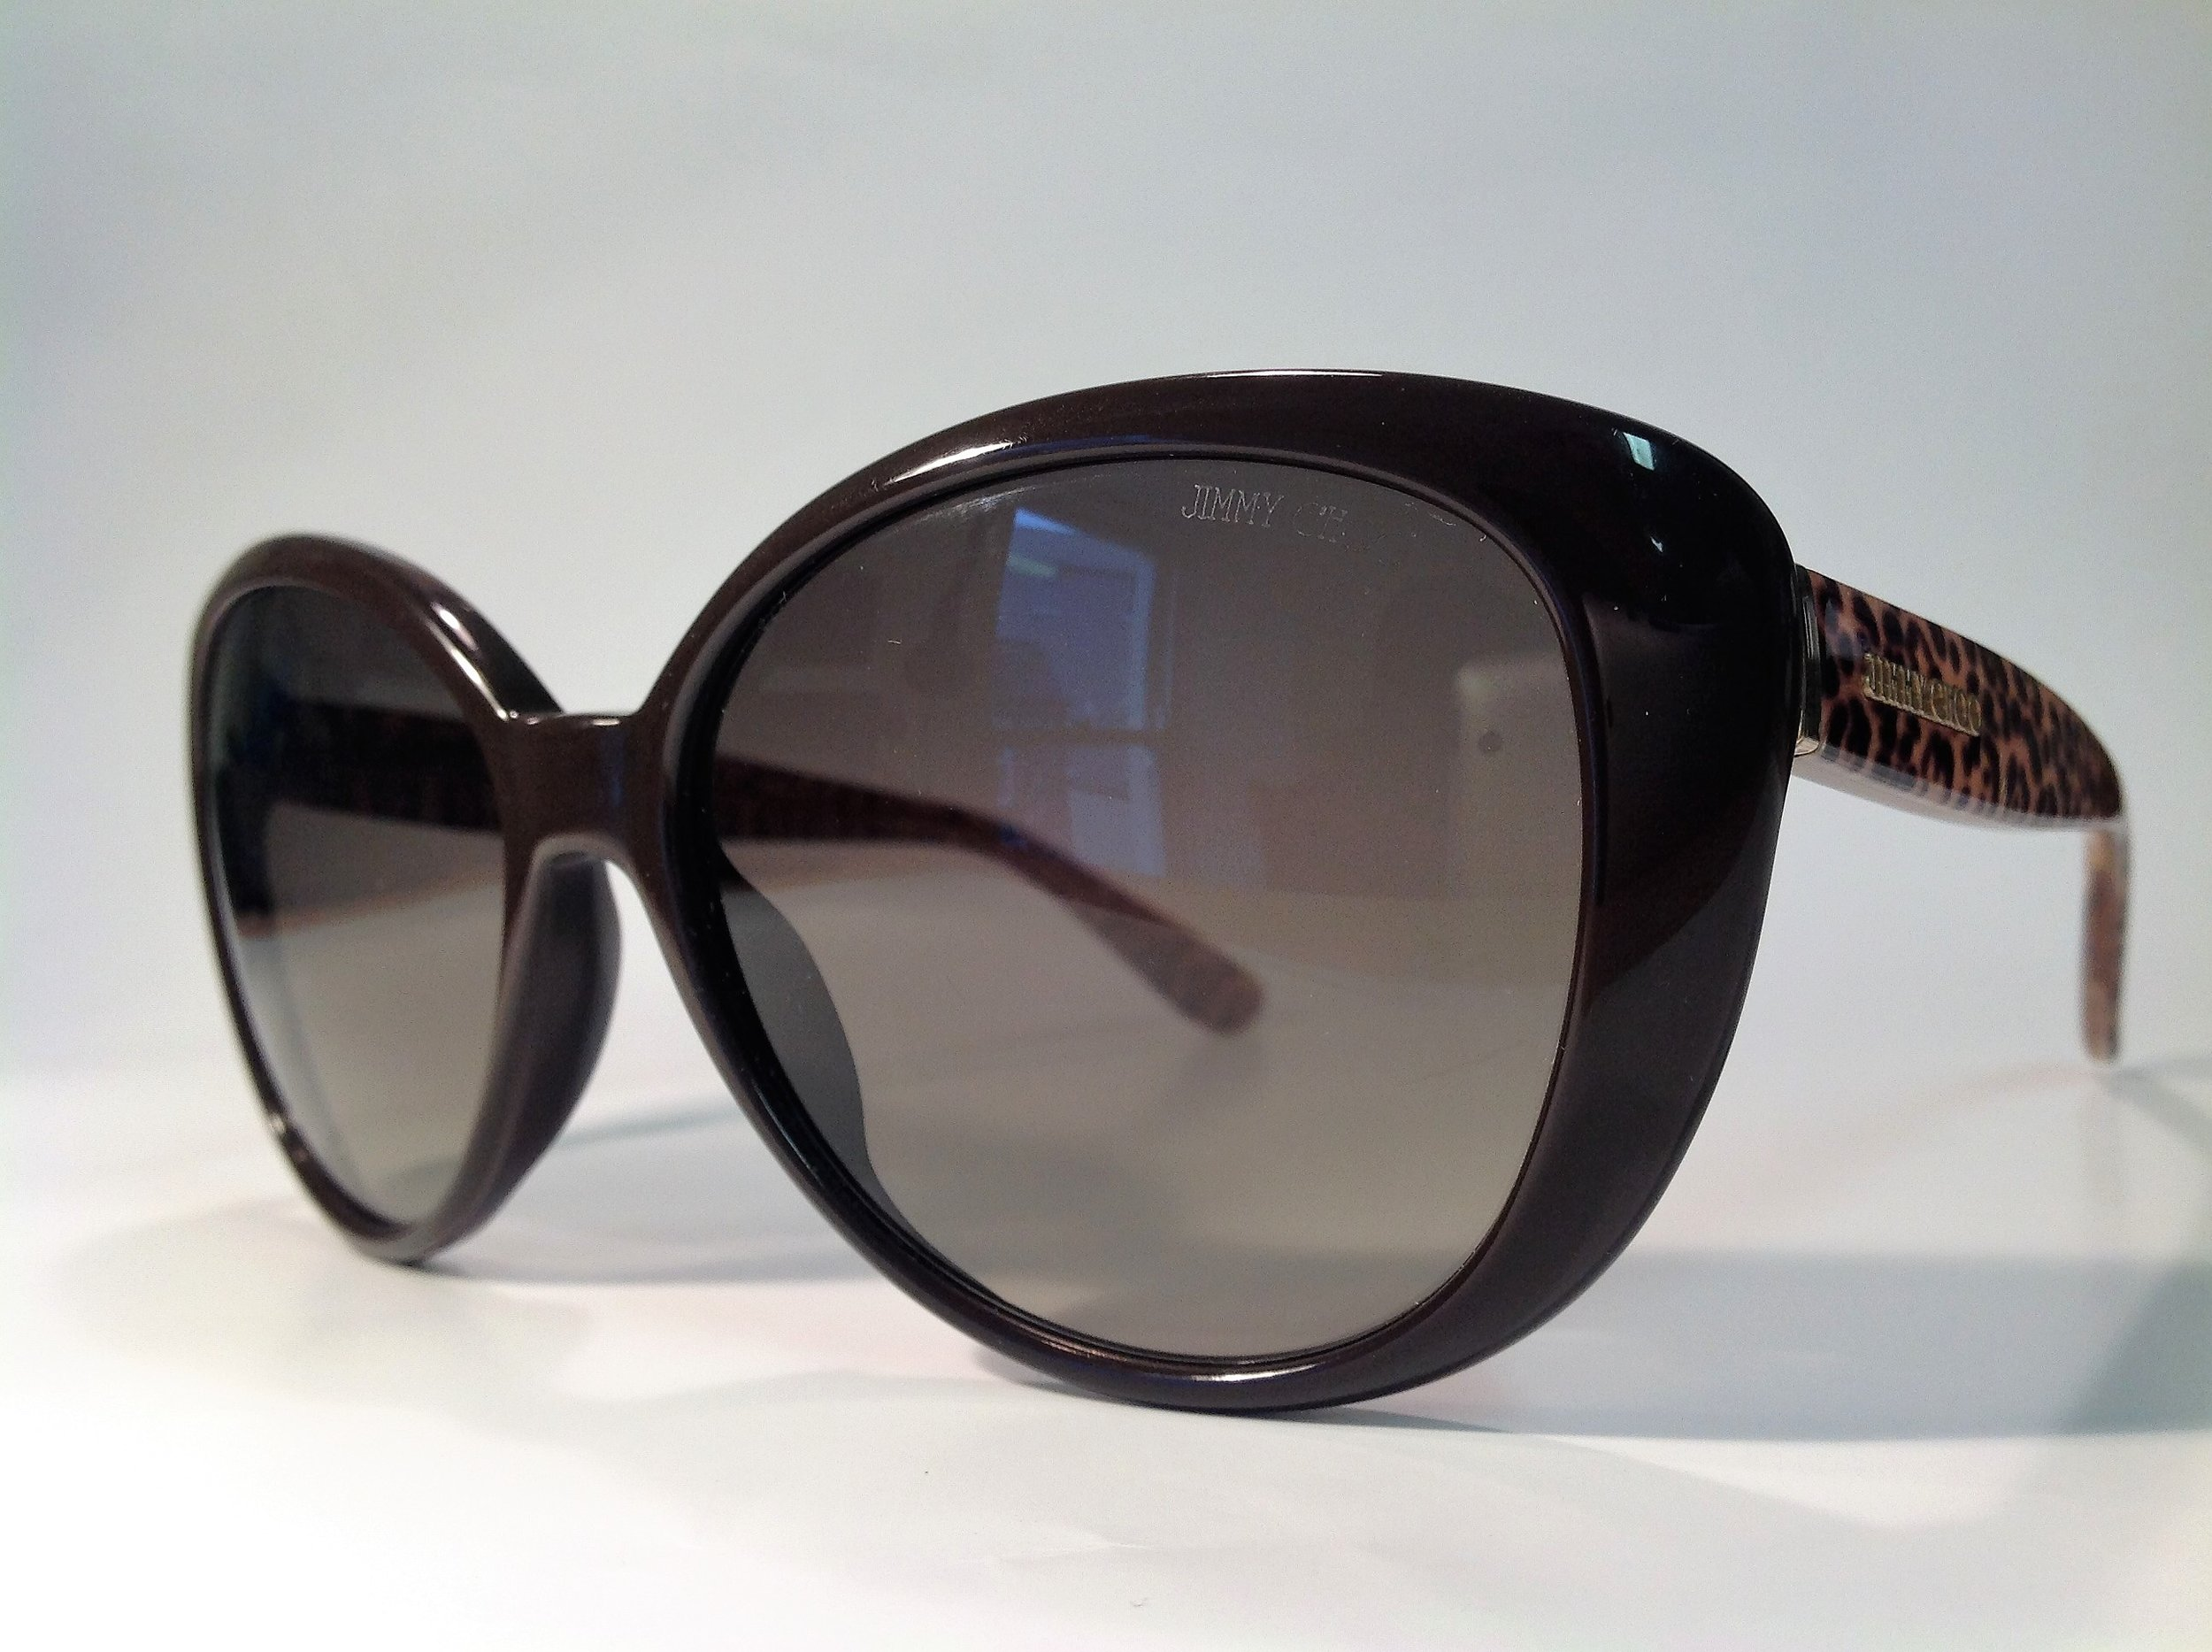 Jimmy Choo €200